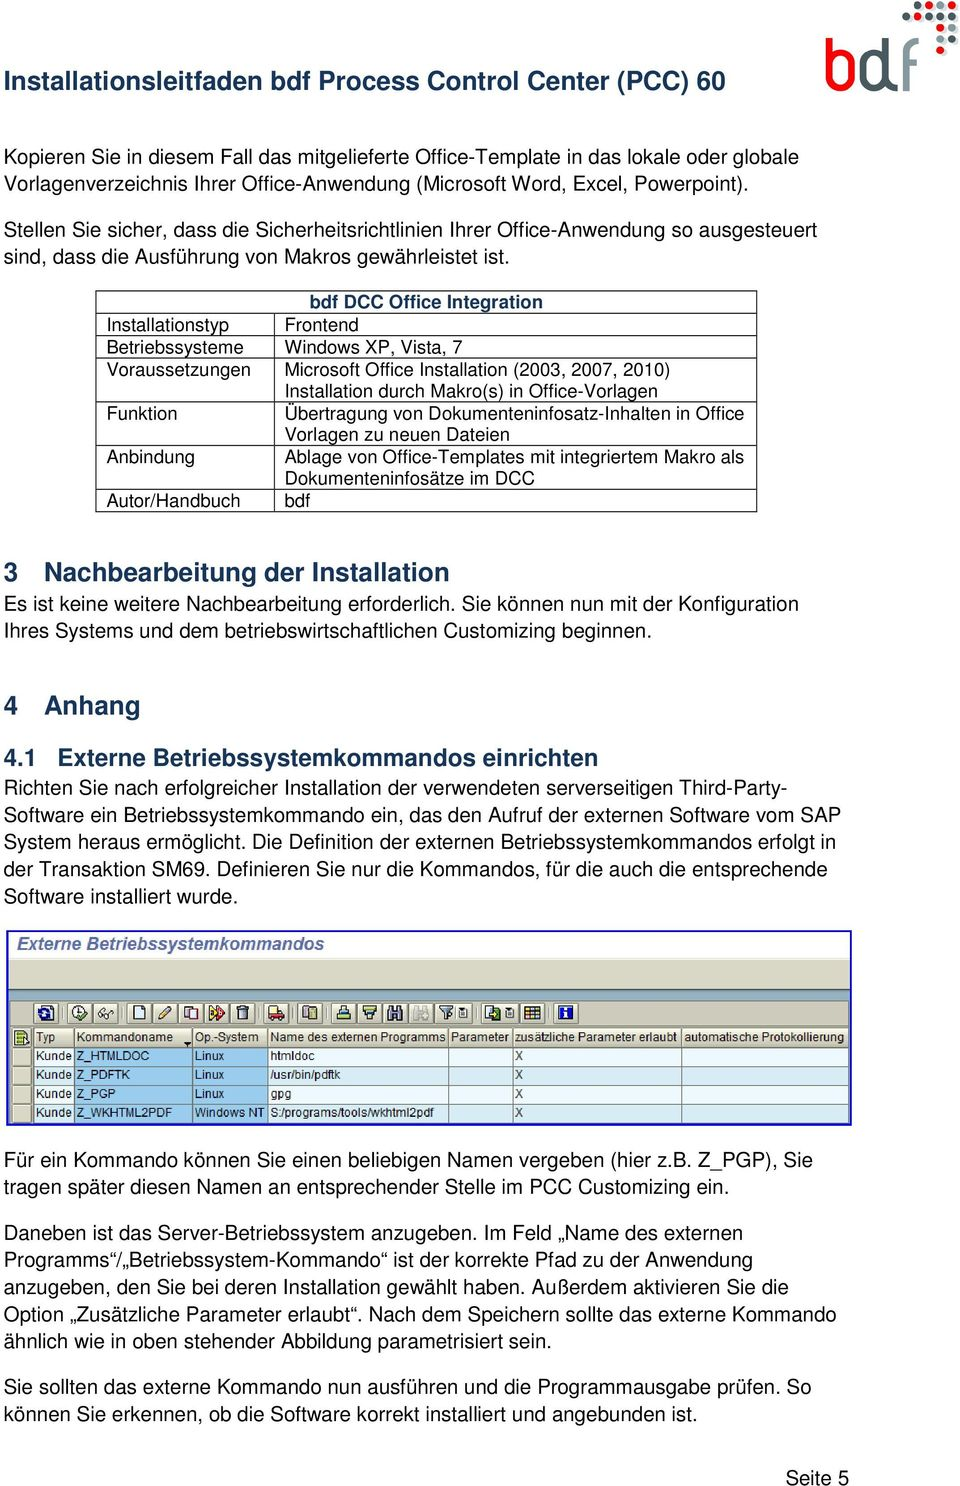 bdf DCC Office Integration Installationstyp Frontend Betriebssysteme Windows XP, Vista, 7 Voraussetzungen Microsoft Office Installation (2003, 2007, 2010) Installation durch Makro(s) in